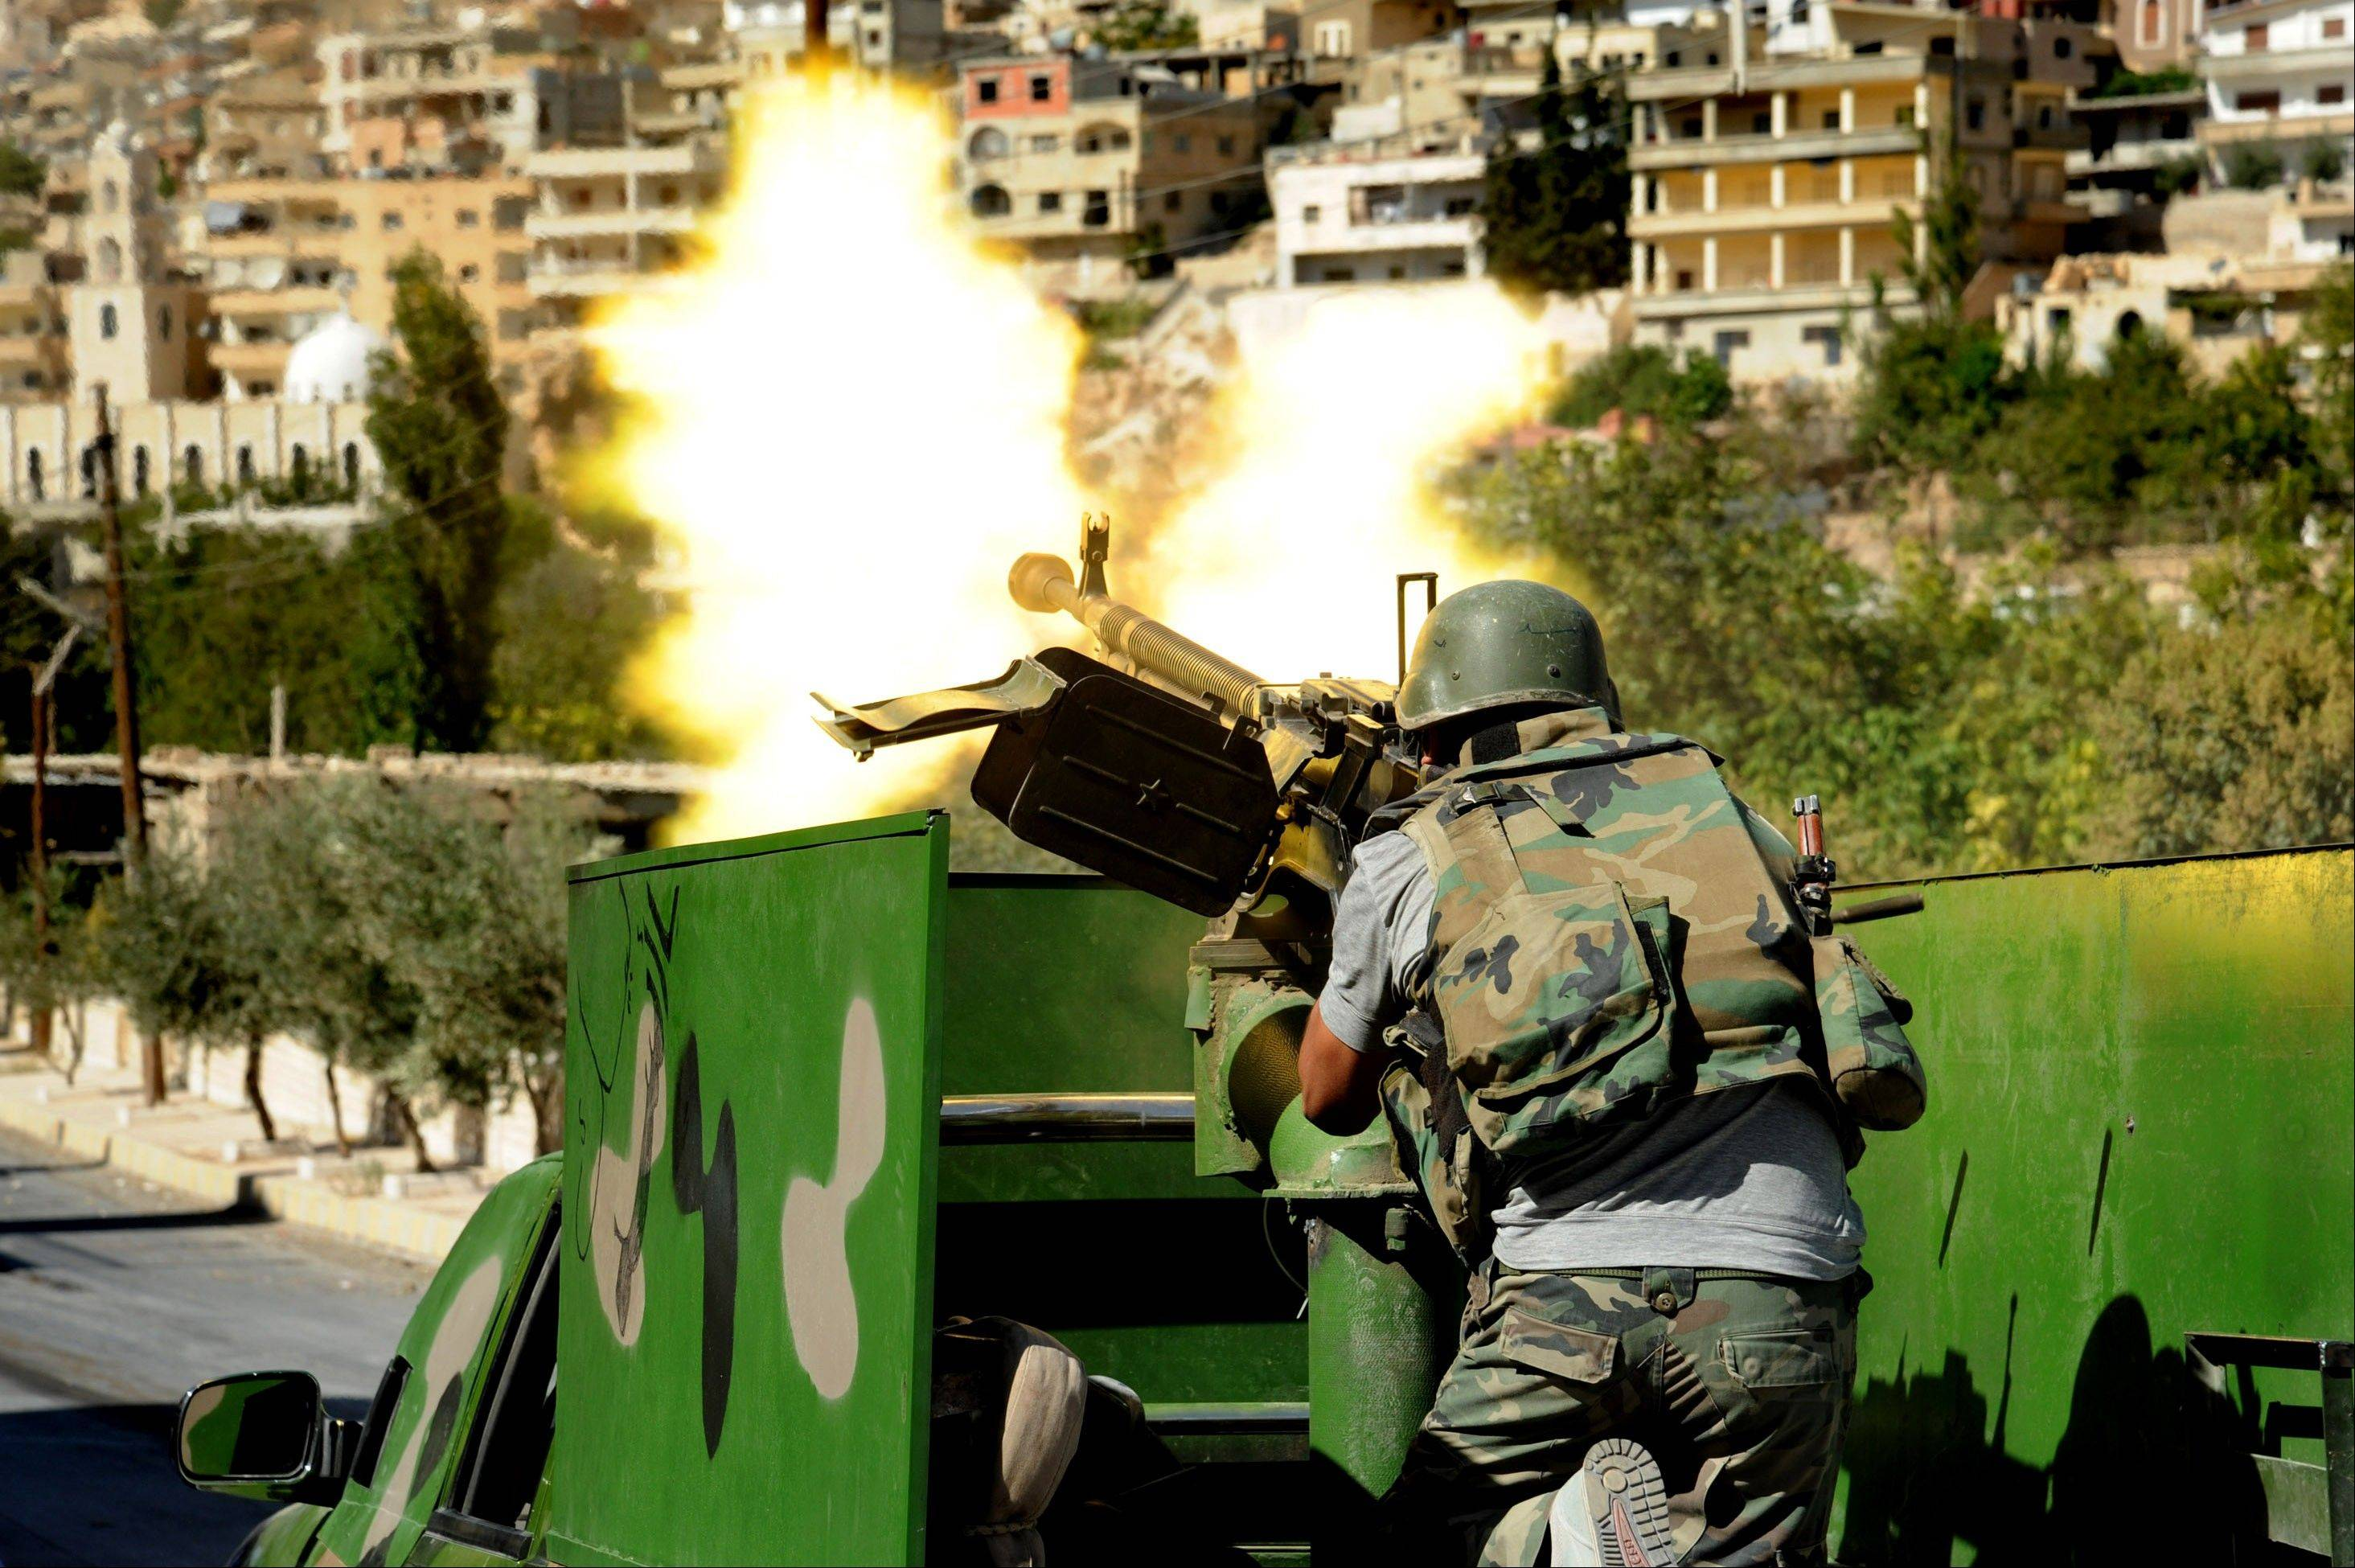 In this photo released Saturday by the Syrian official news agency SANA, a Syrian military soldier fires a heavy machine gun during clashes with rebels in Maaloula village, northeast of the capital Damascus, Syria. Rebels including al-Qaida-linked fighters gained control of Maaloula, Syrian activists said Sunday. Government media provided a dramatically different account of the battle suggesting regime forces were winning. It was impossible to independently verify the reports from Maaloula, a scenic mountain community known for being one of the few places in the world where residents still speak the ancient Middle Eastern language of Aramaic.